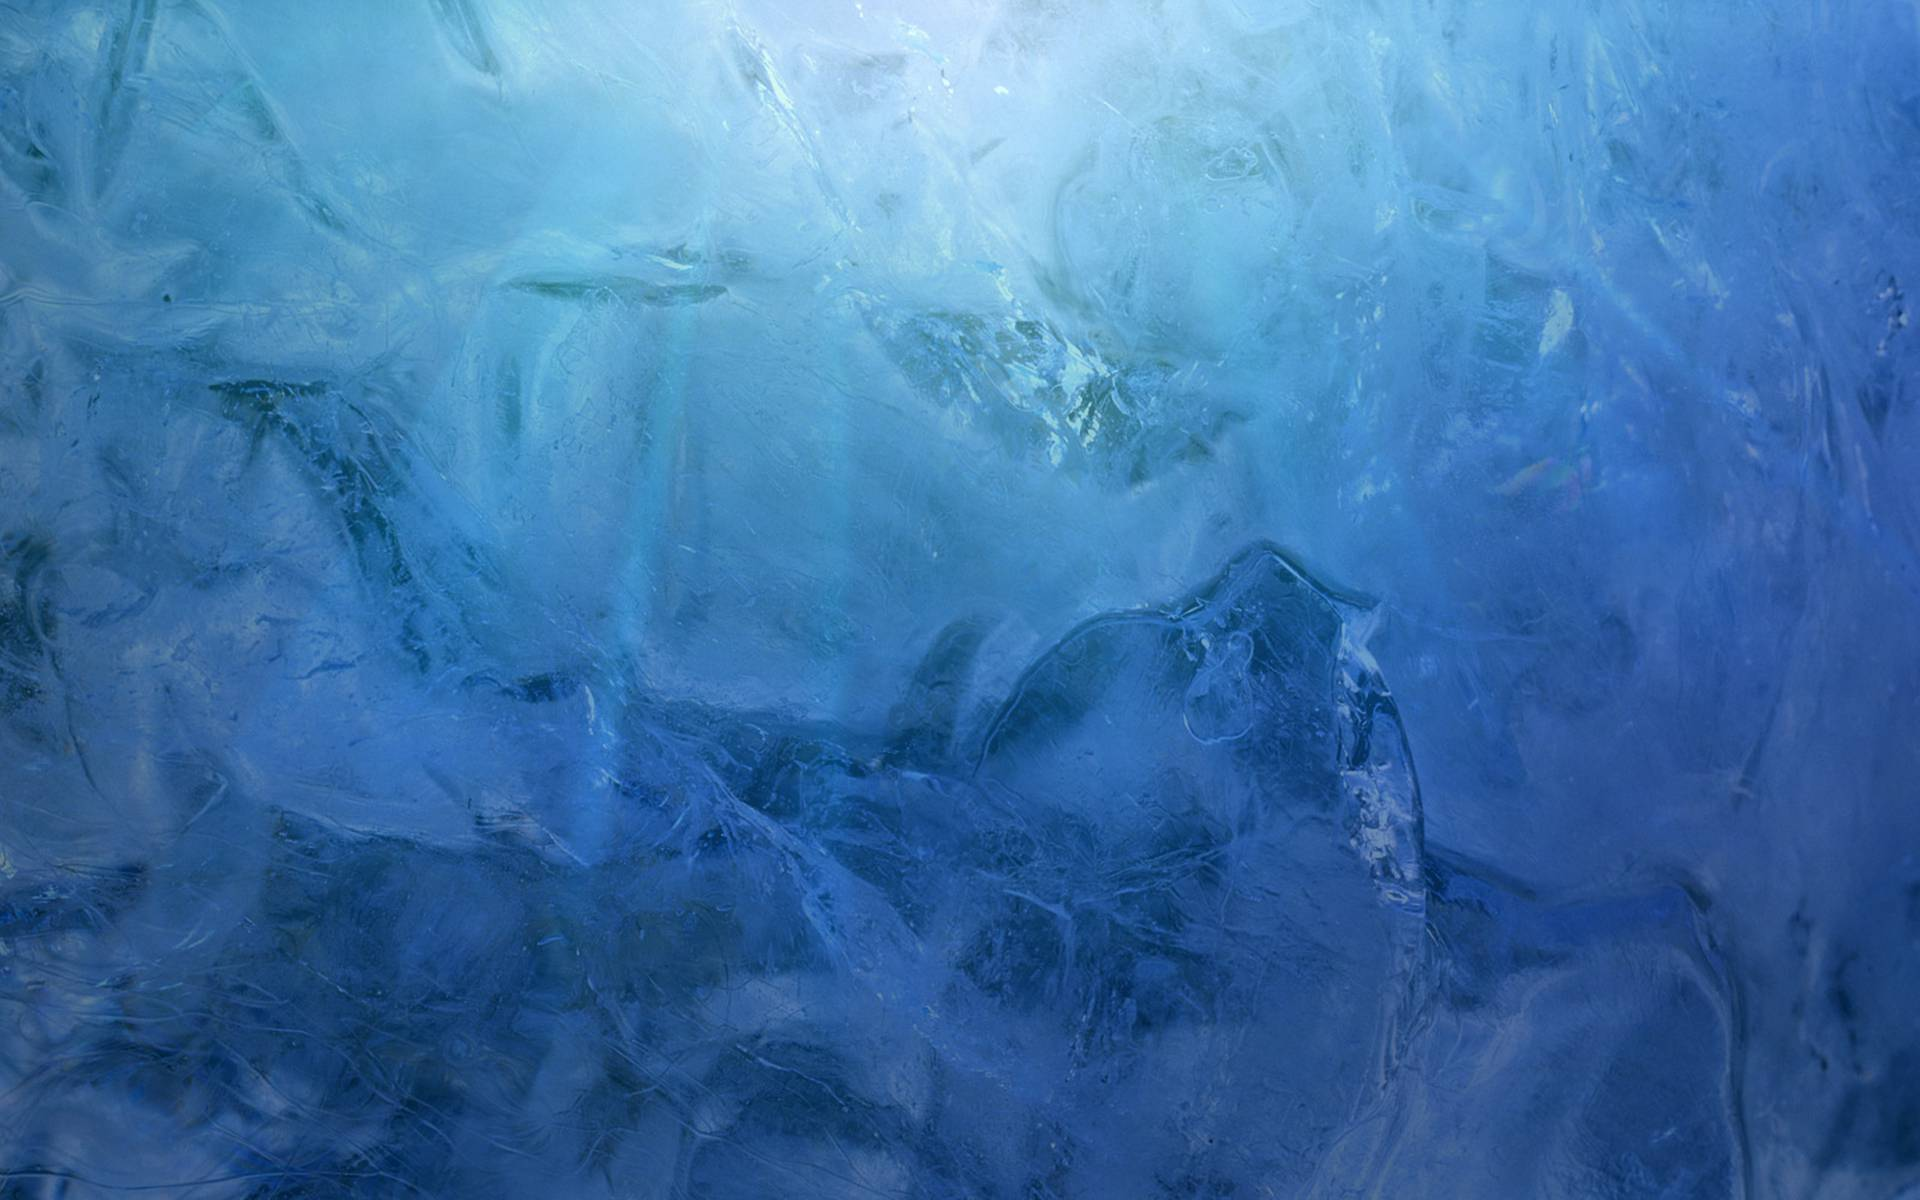 Ice Wallpaper